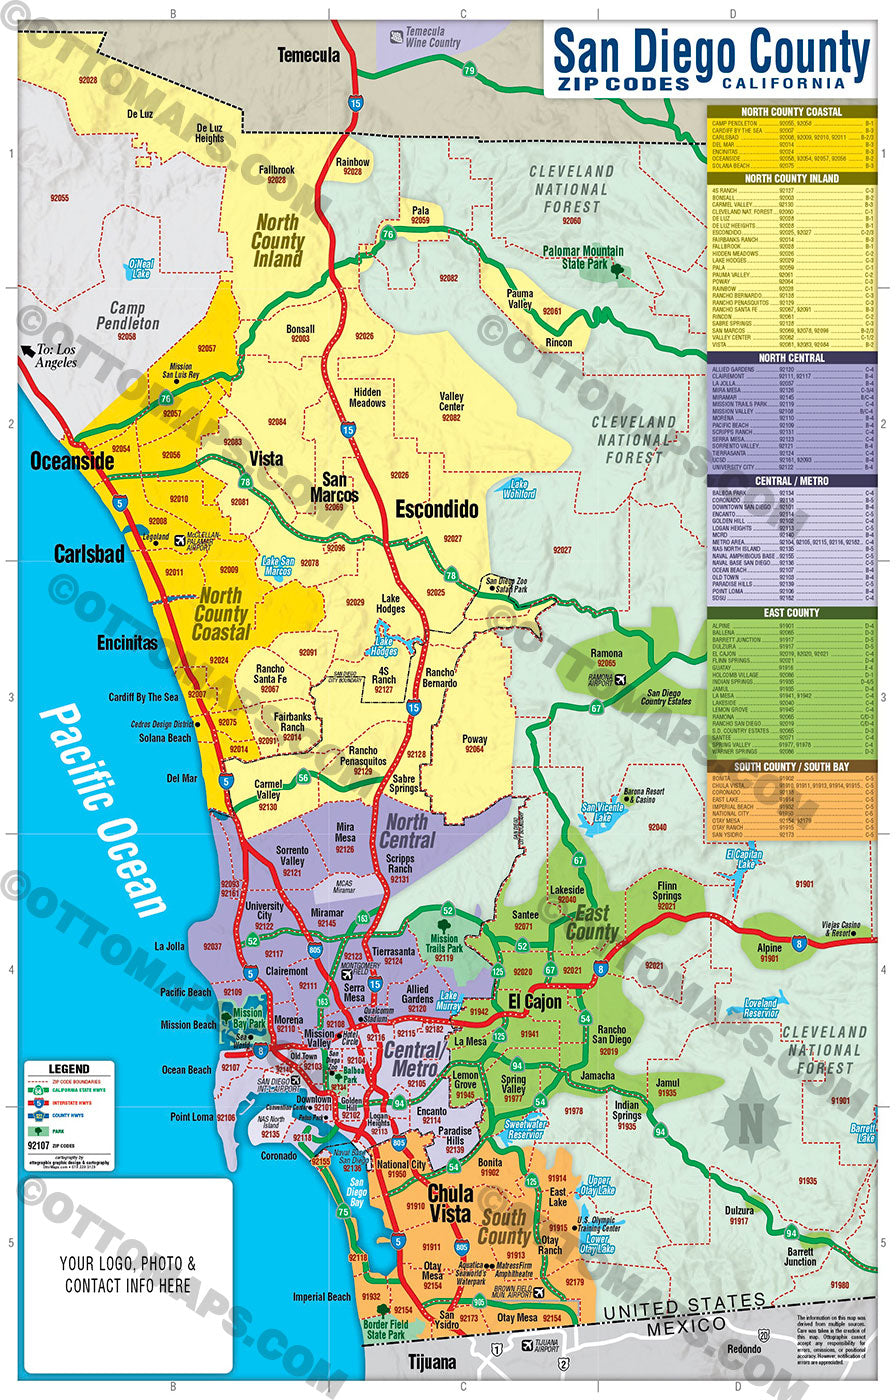 San Diego County Zip Code Map - COASTAL (with County Areas)